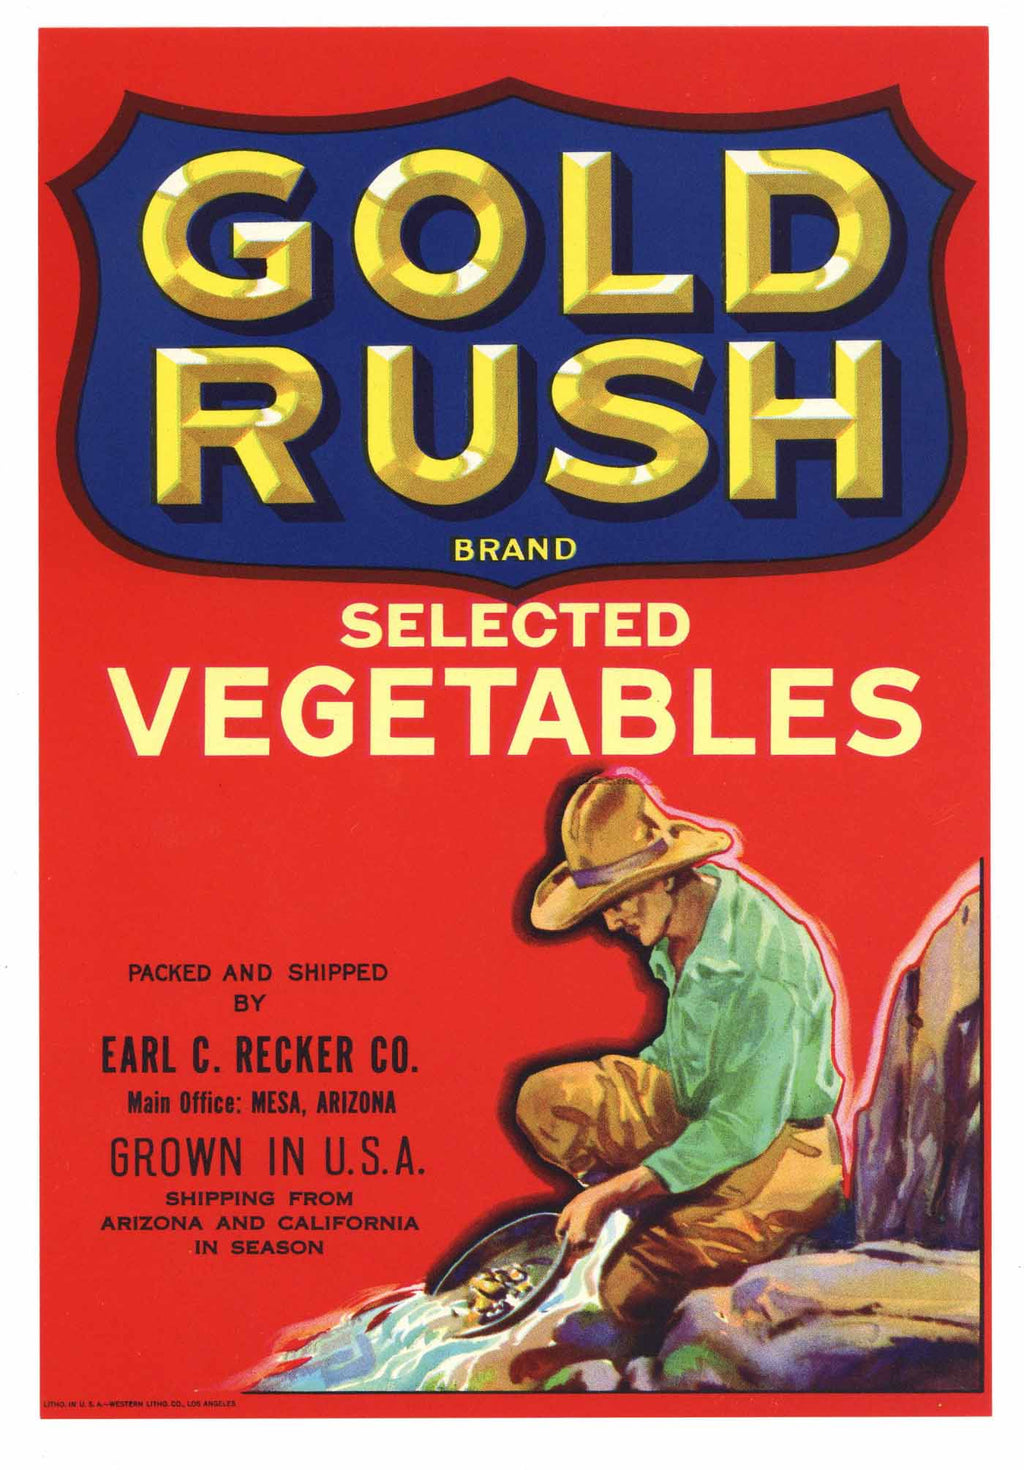 Gold Rush Brand Vintage Arizona Vegetable Crate Label